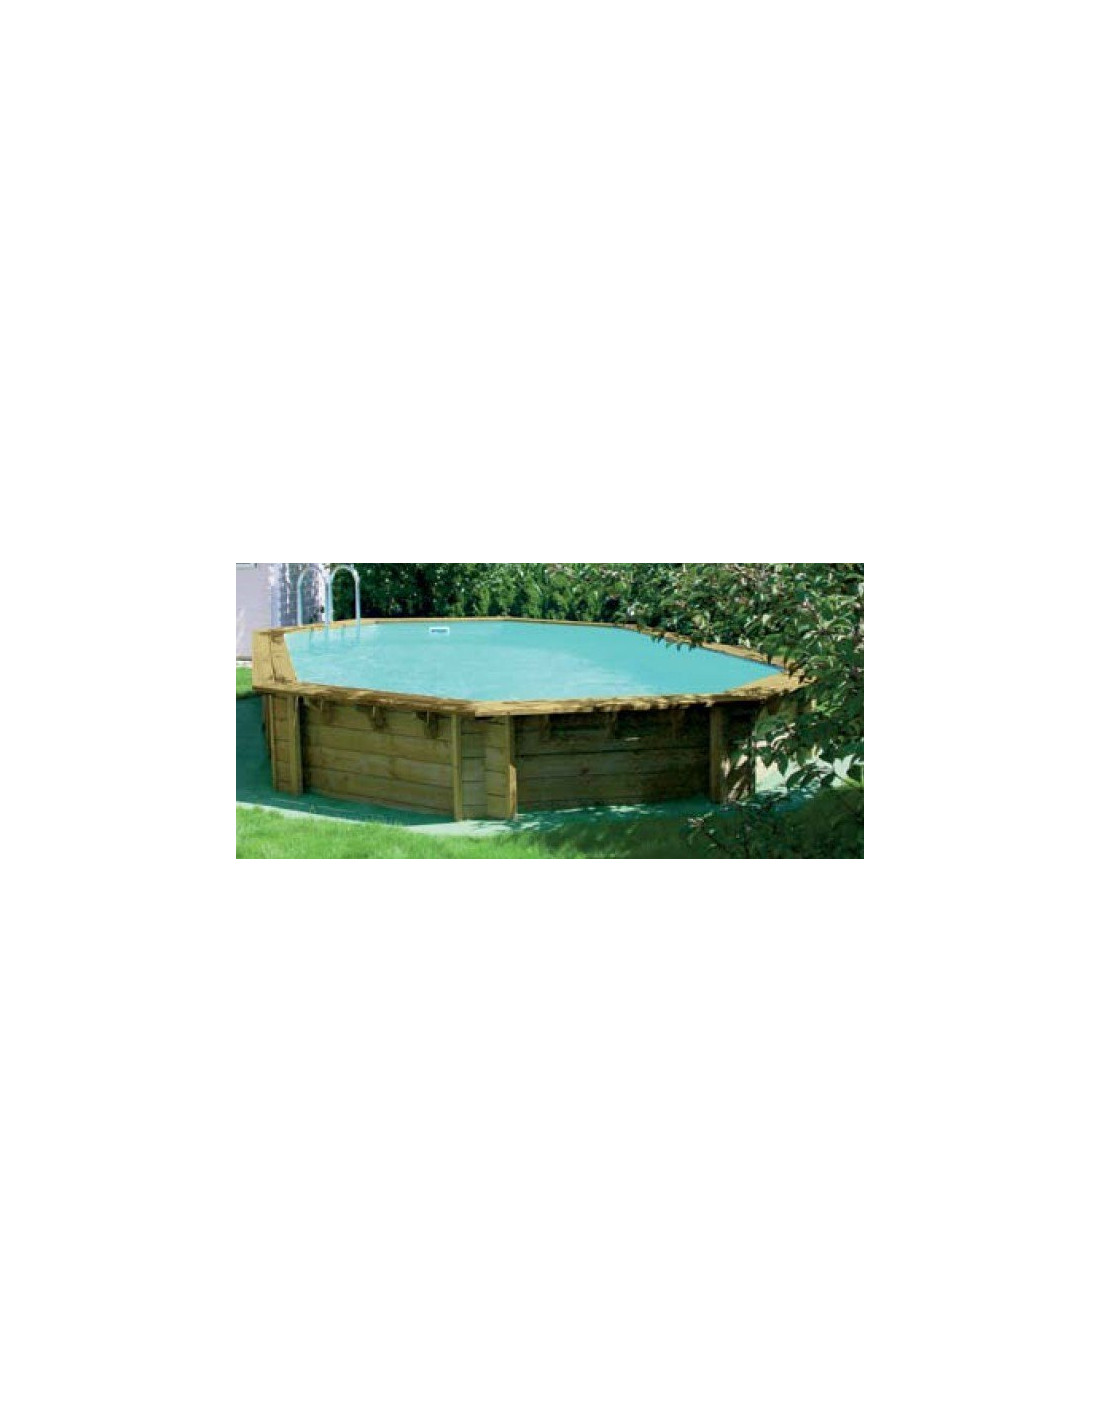 piscine weva octo 6 40m x 4 04m x 1 46m home piscine On piscine hors sol kit bois